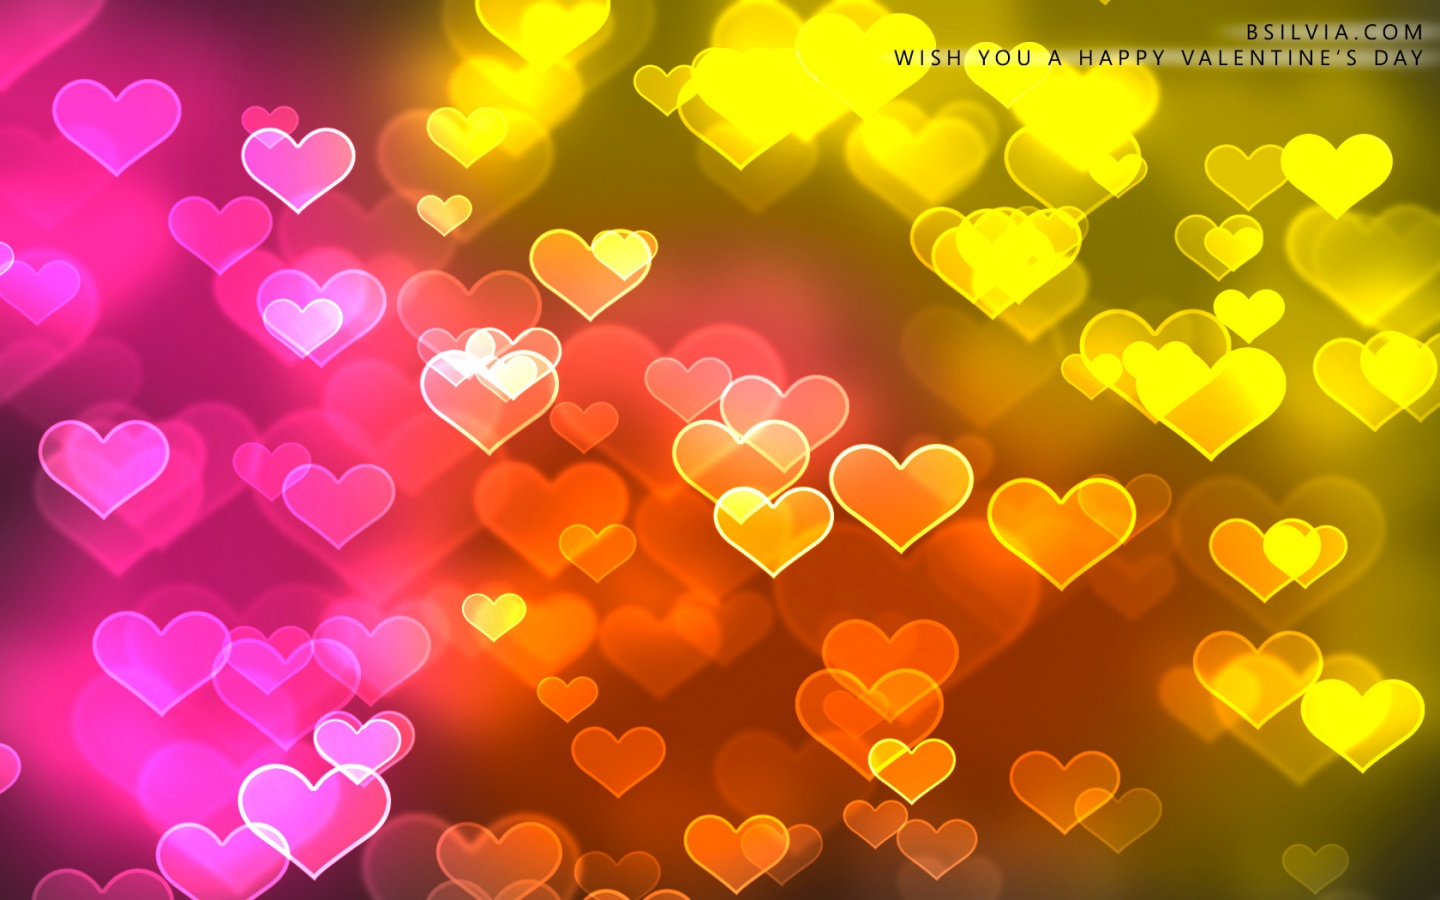 Valentine Day Wallpapers Backgrounds 1440x900px